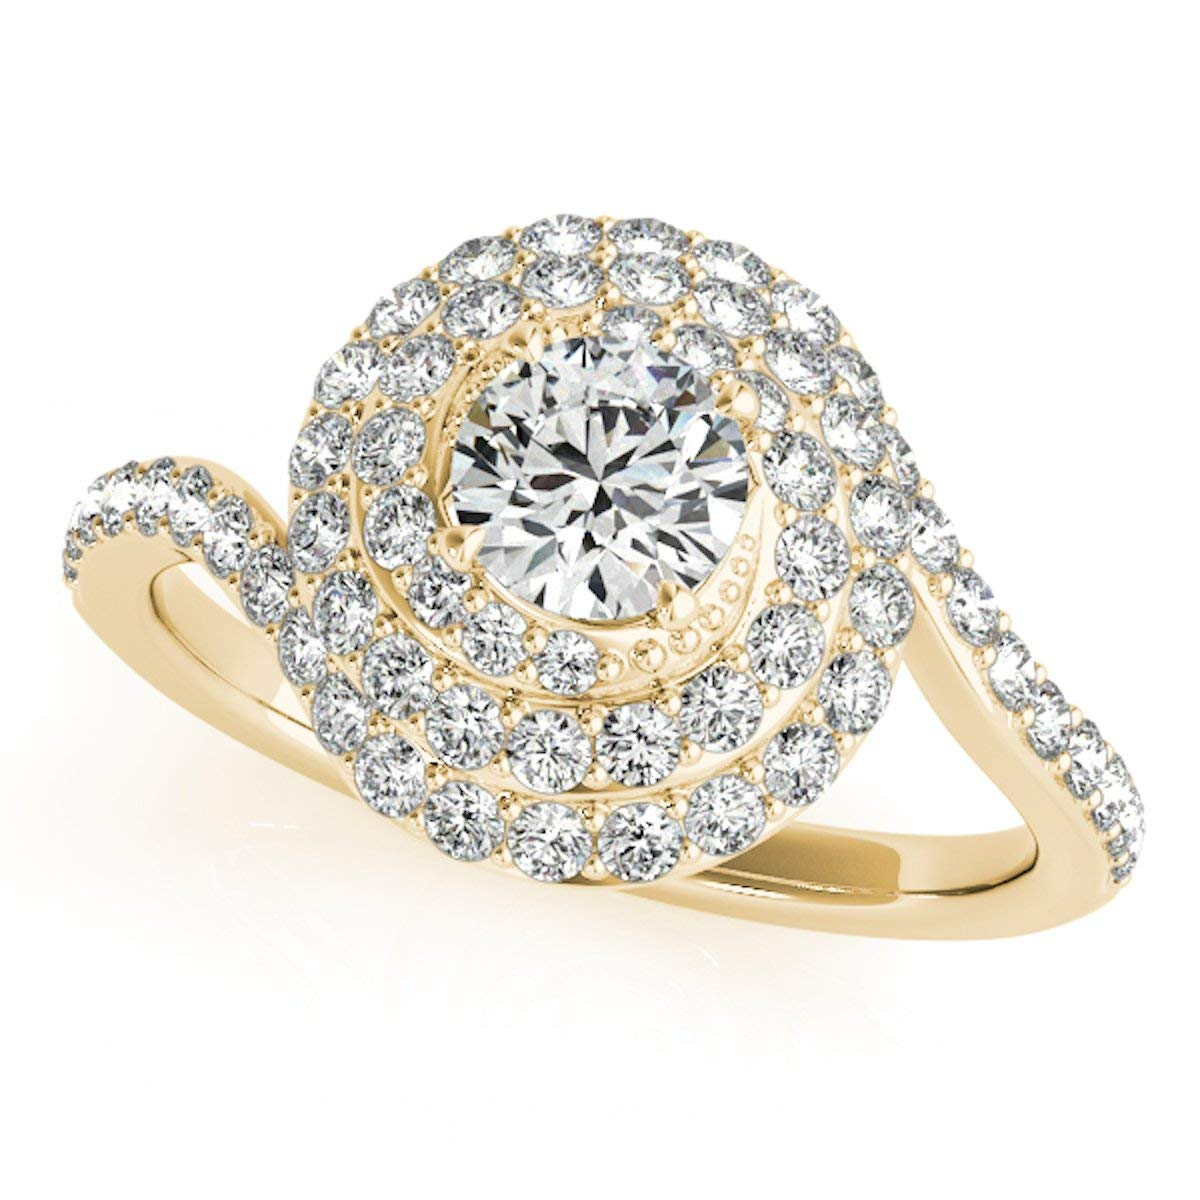 Beautiful 1 Carat Halo Diamond Dome Shaped Engagement Ring In 14k Gold - Artsyjewels